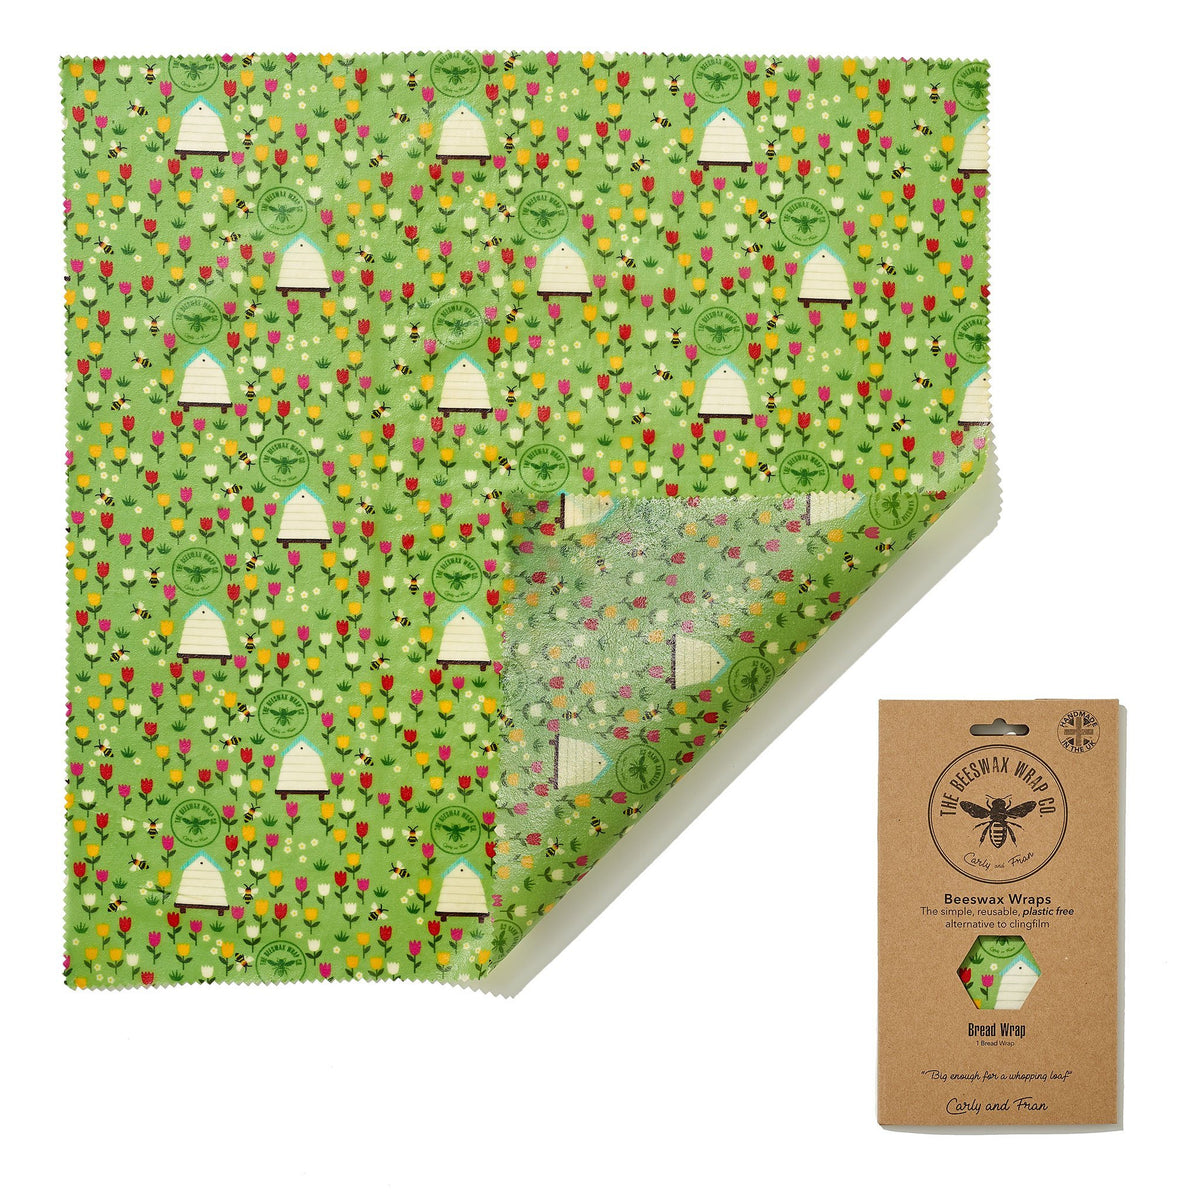 Beeswax Food Wrap - Bread Wrap - Meadow Design | Food Wrap - The Naughty Shrew